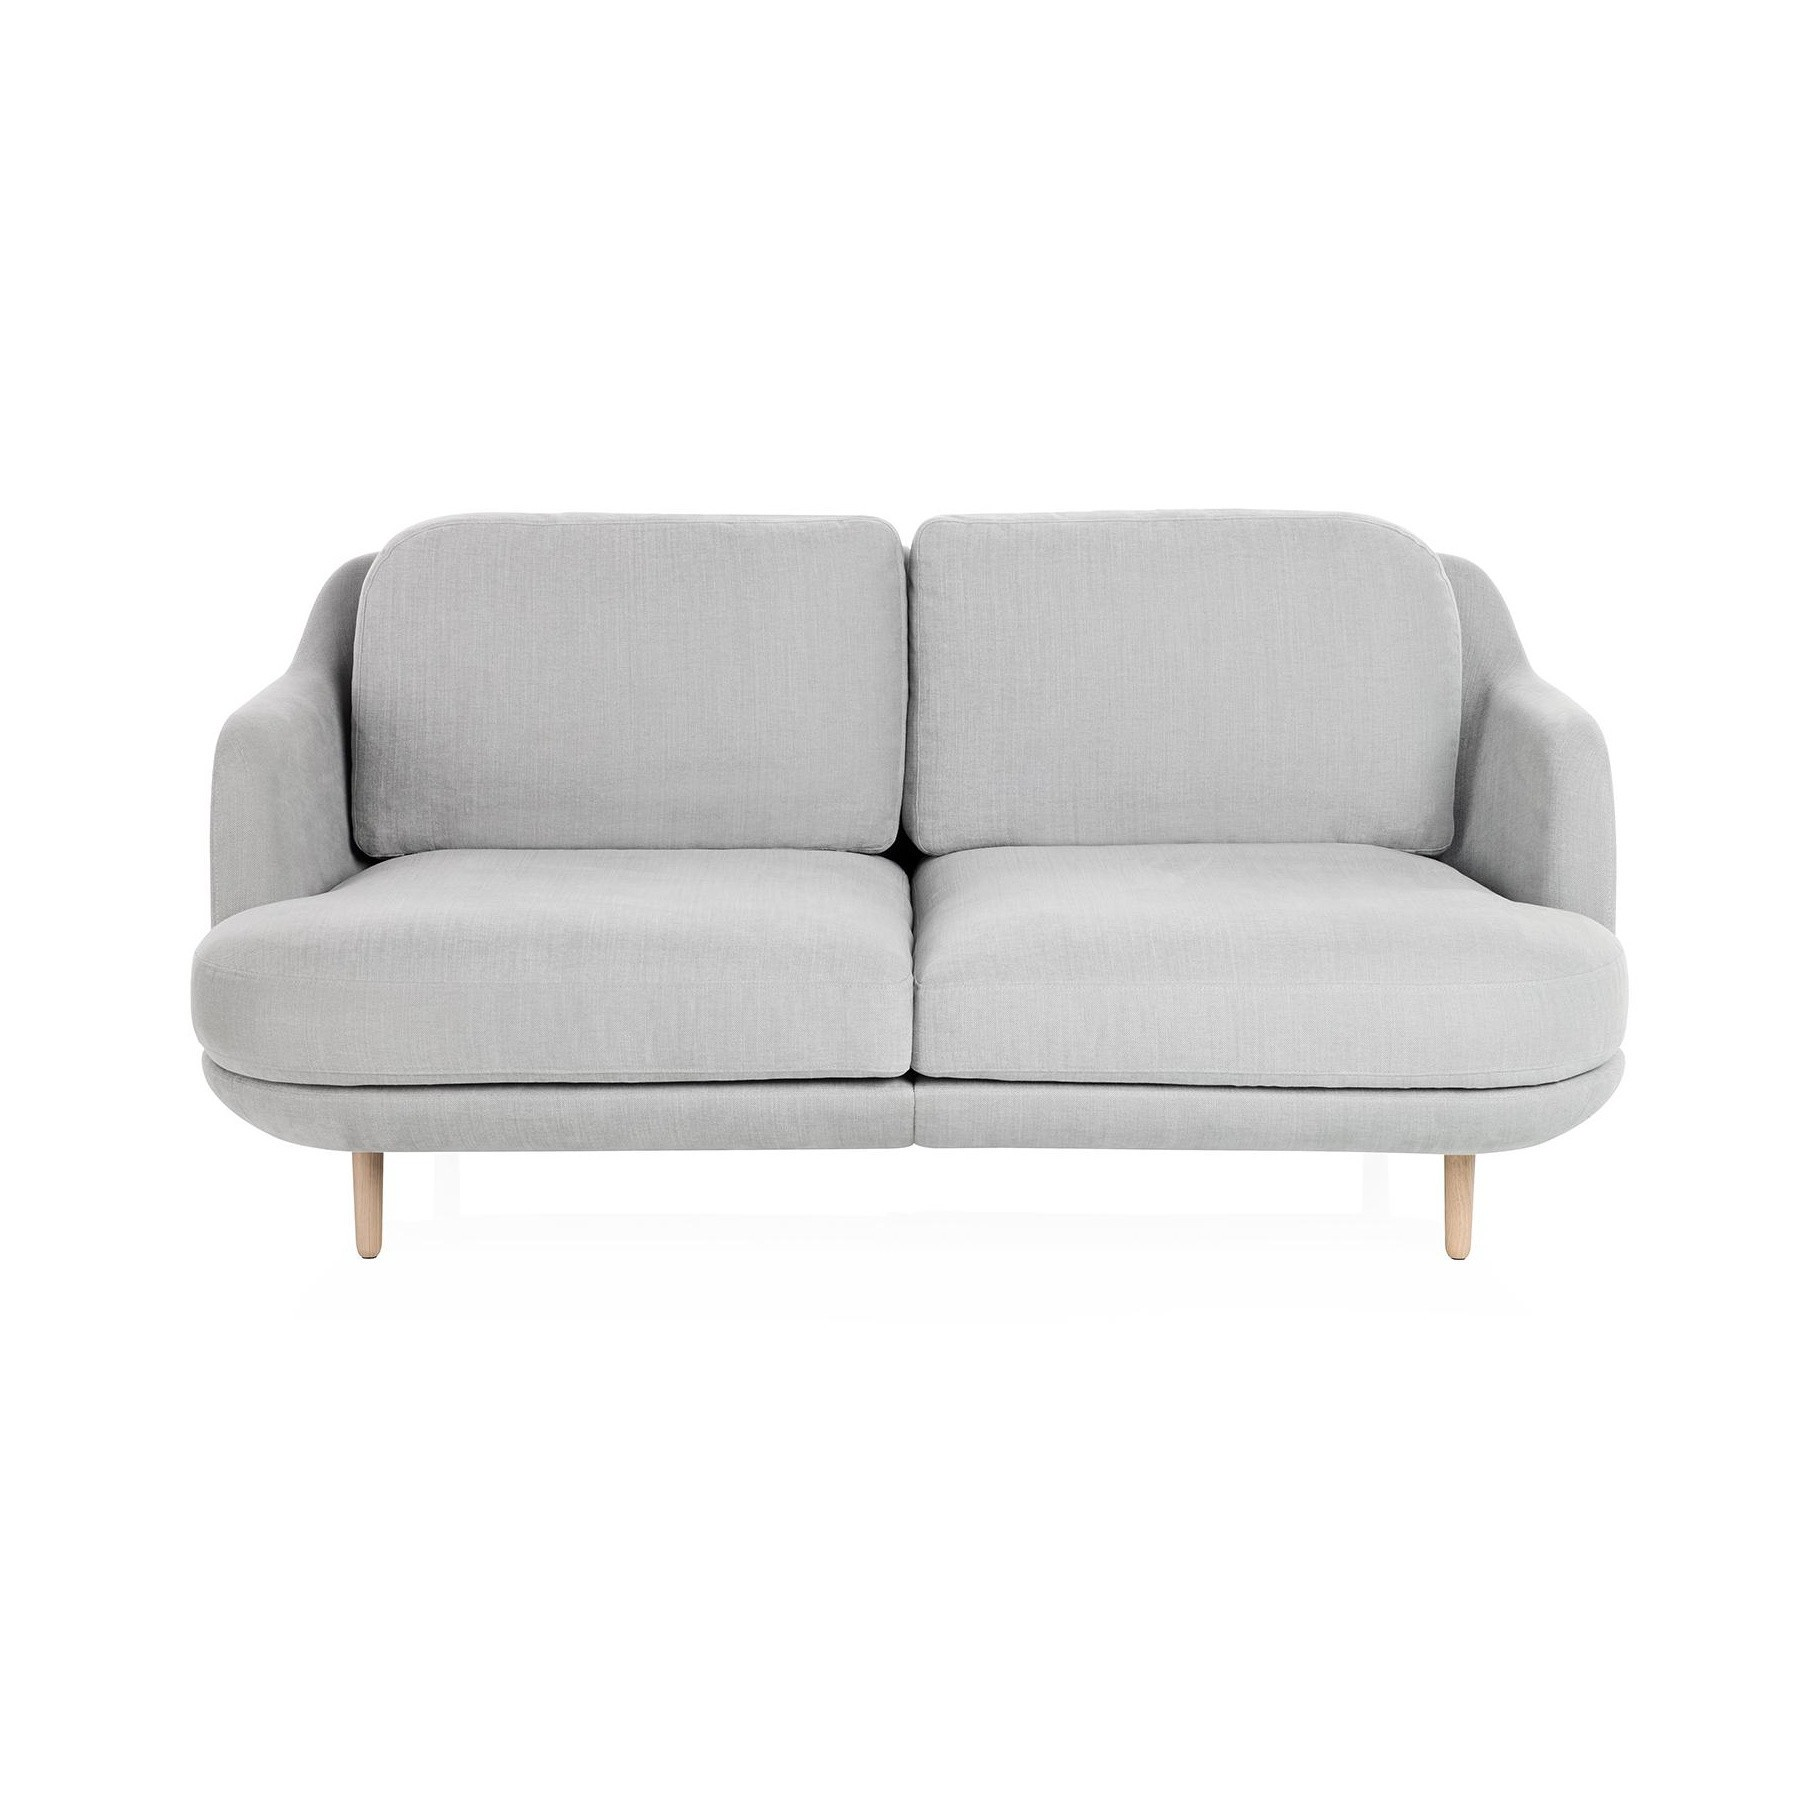 Side By Side 80 Cm Breit Lune 2 Seater Sofa 155 X 93 5 Cm